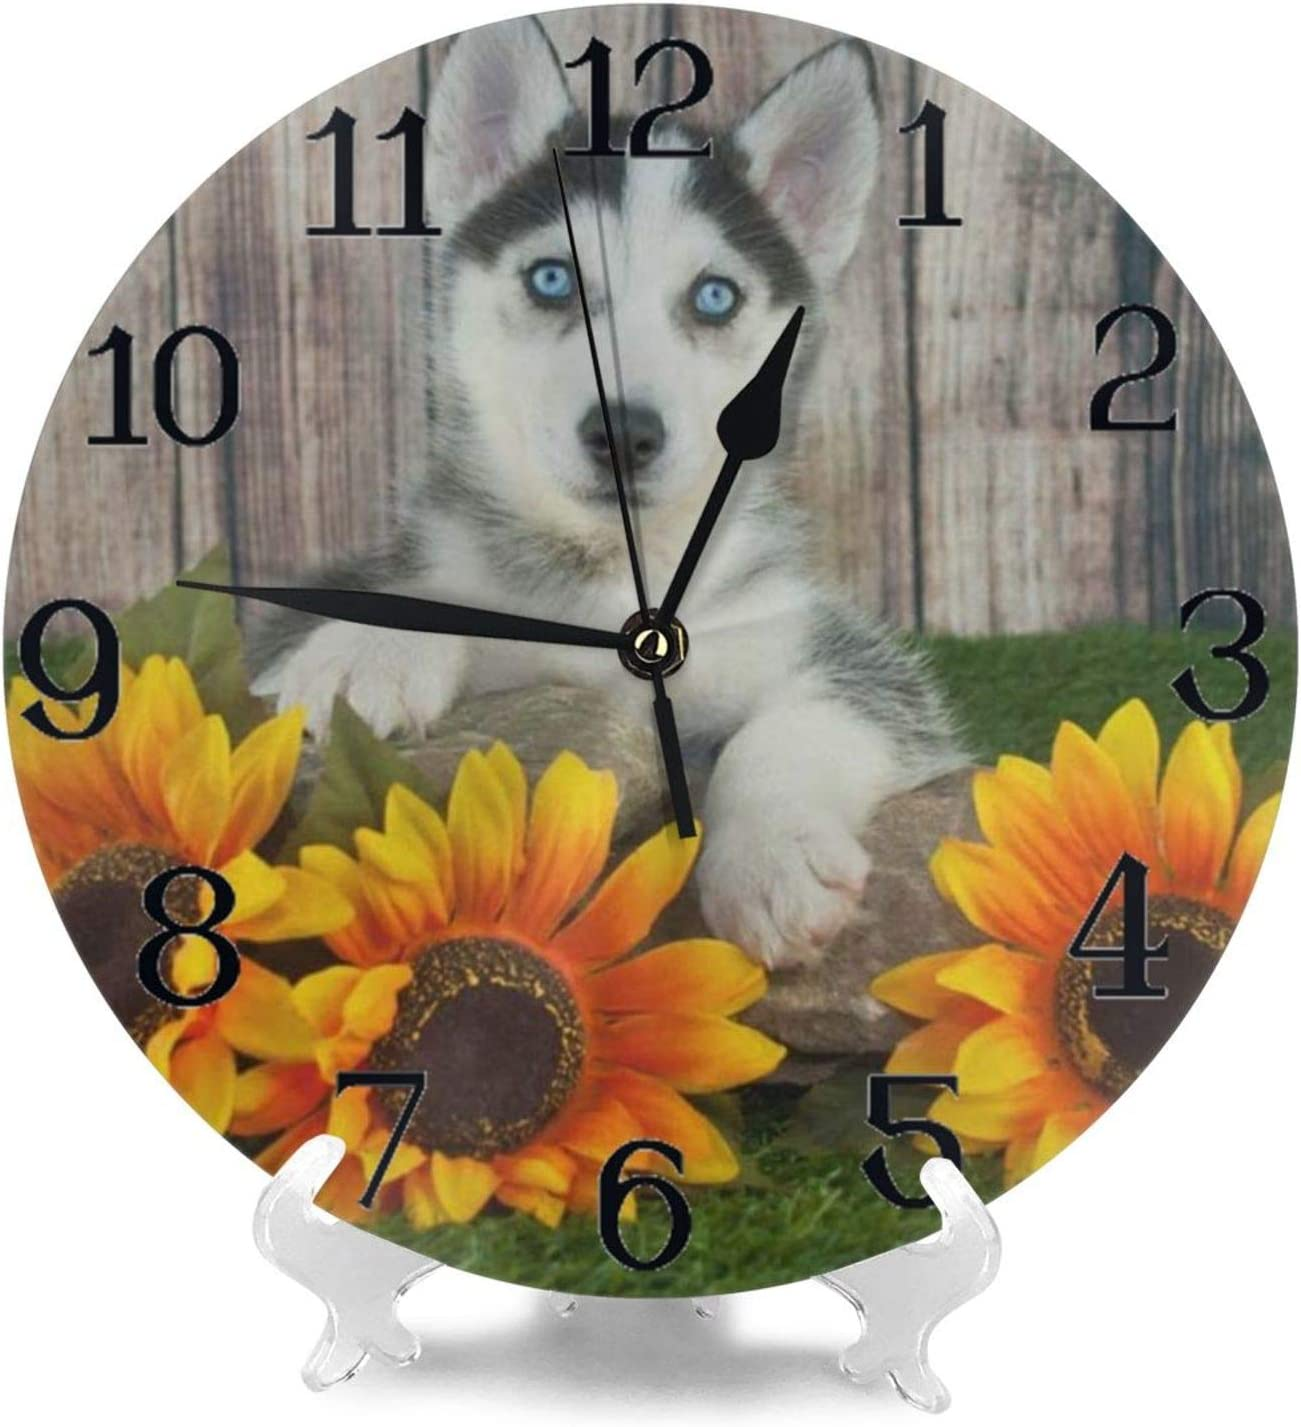 Wall Clock Large Cute Husky Funny Dog and Sunflower Non Ticking Kitchen Bedroom Bathroom Wall Clocks Battery Operated Round Silent Outdoor Office Cool Living Room Decor for Kids Womens